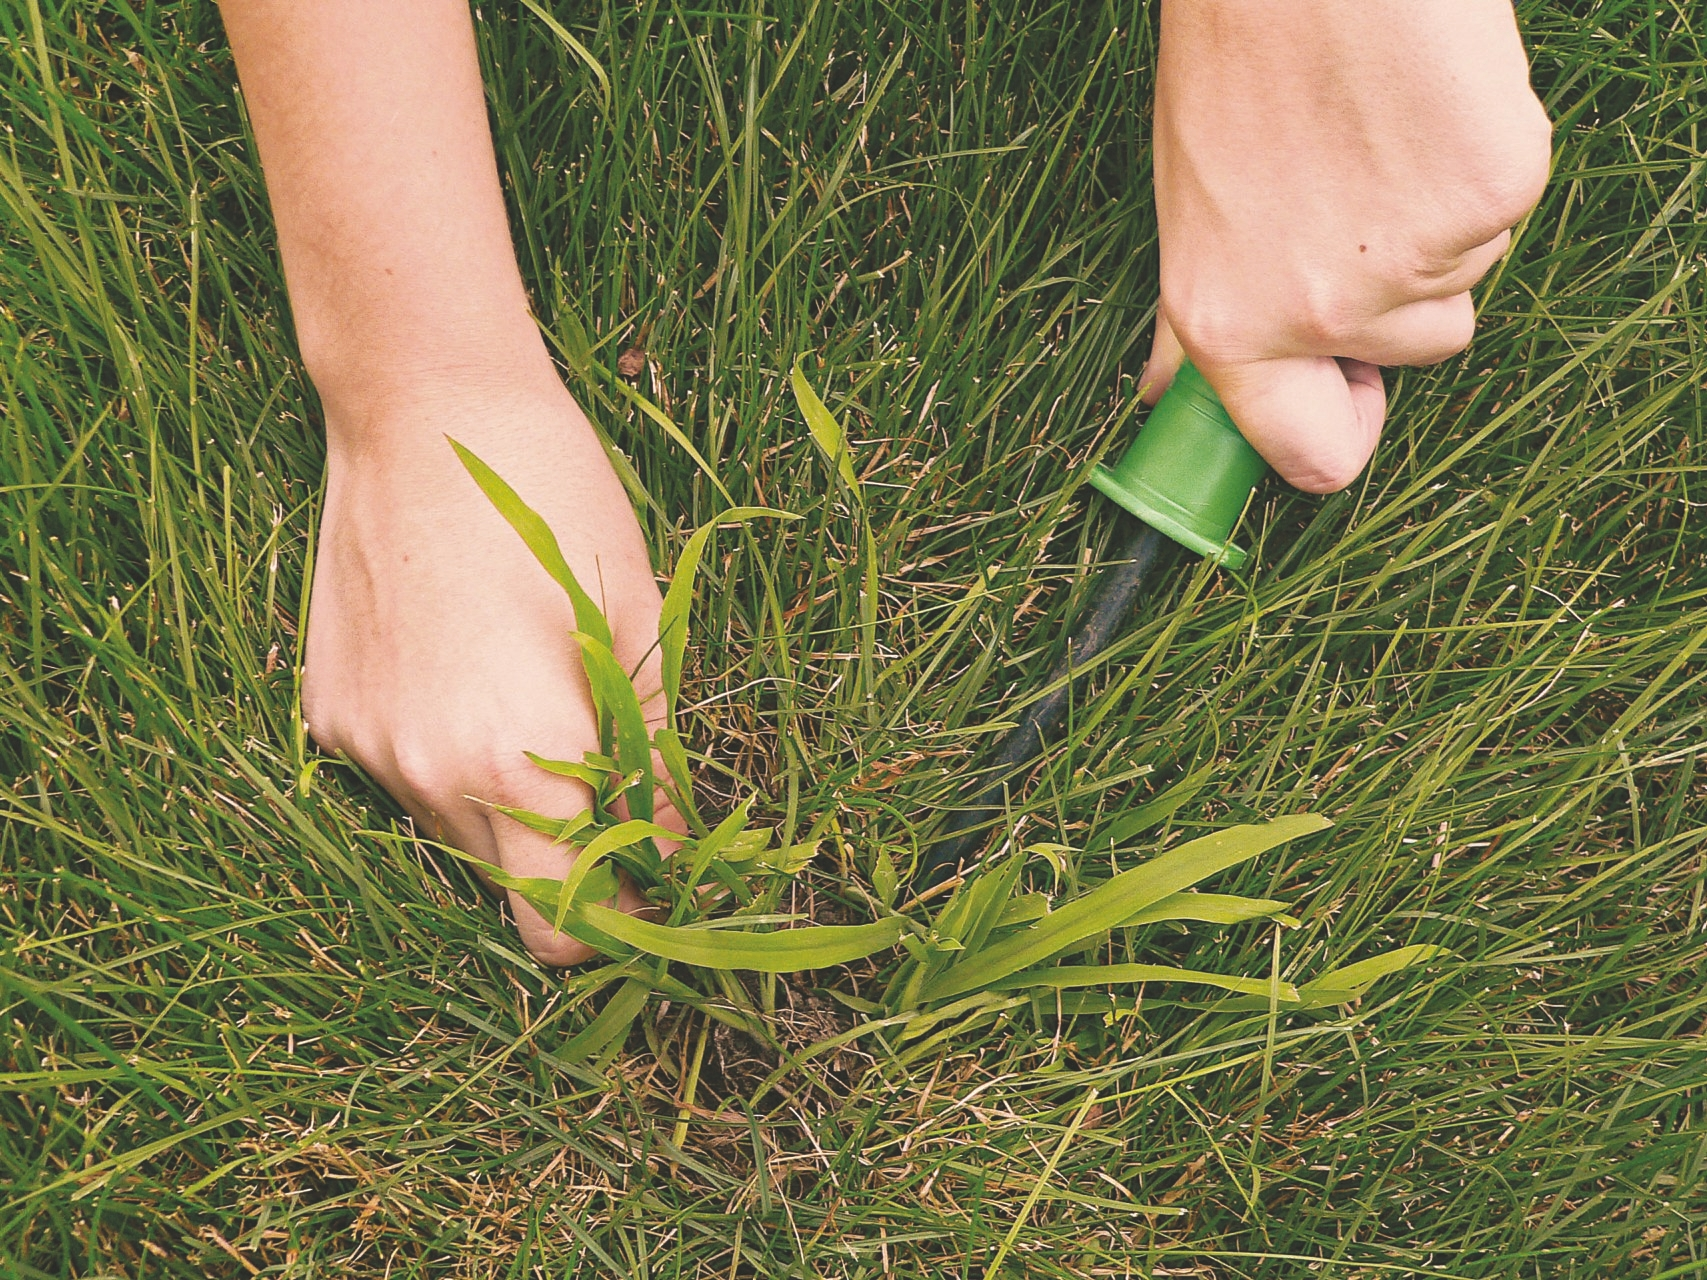 To help contain crabgrass, Consumer Reports suggests applying corn gluten meal, a natural alternative to chemical herbicide, in early spring.